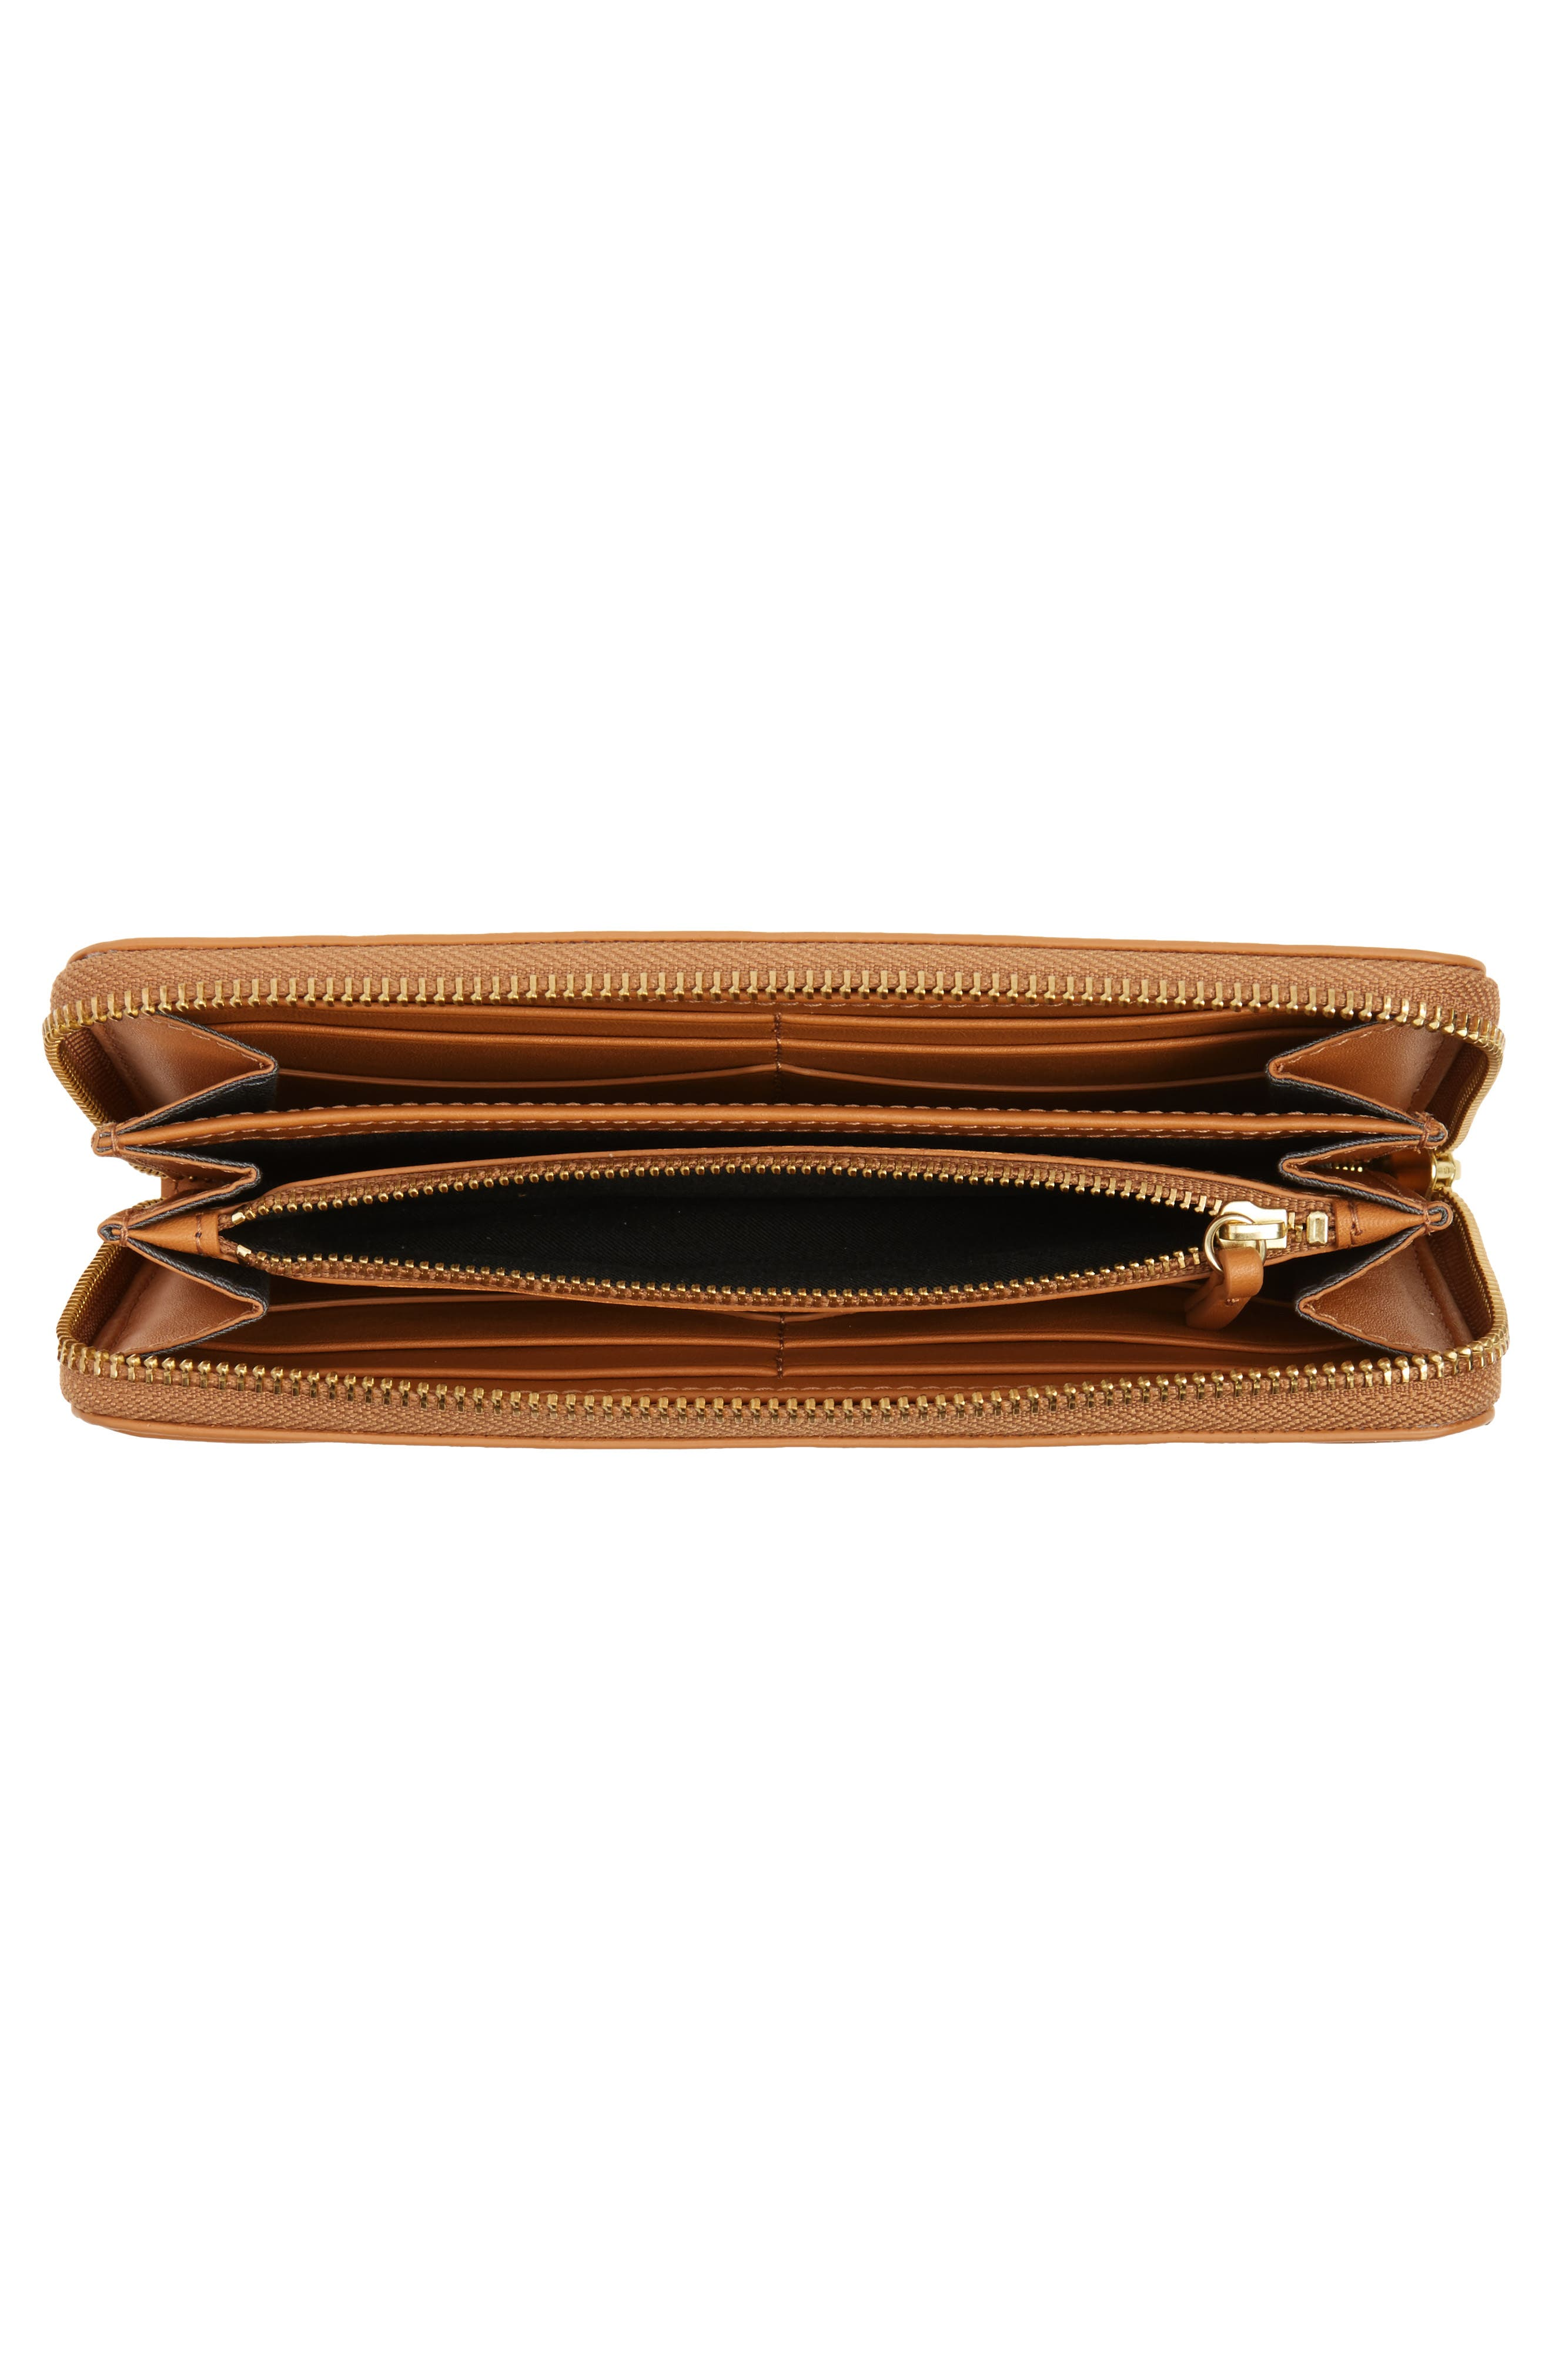 Leather Continental Wallet,                             Alternate thumbnail 2, color,                             Tan